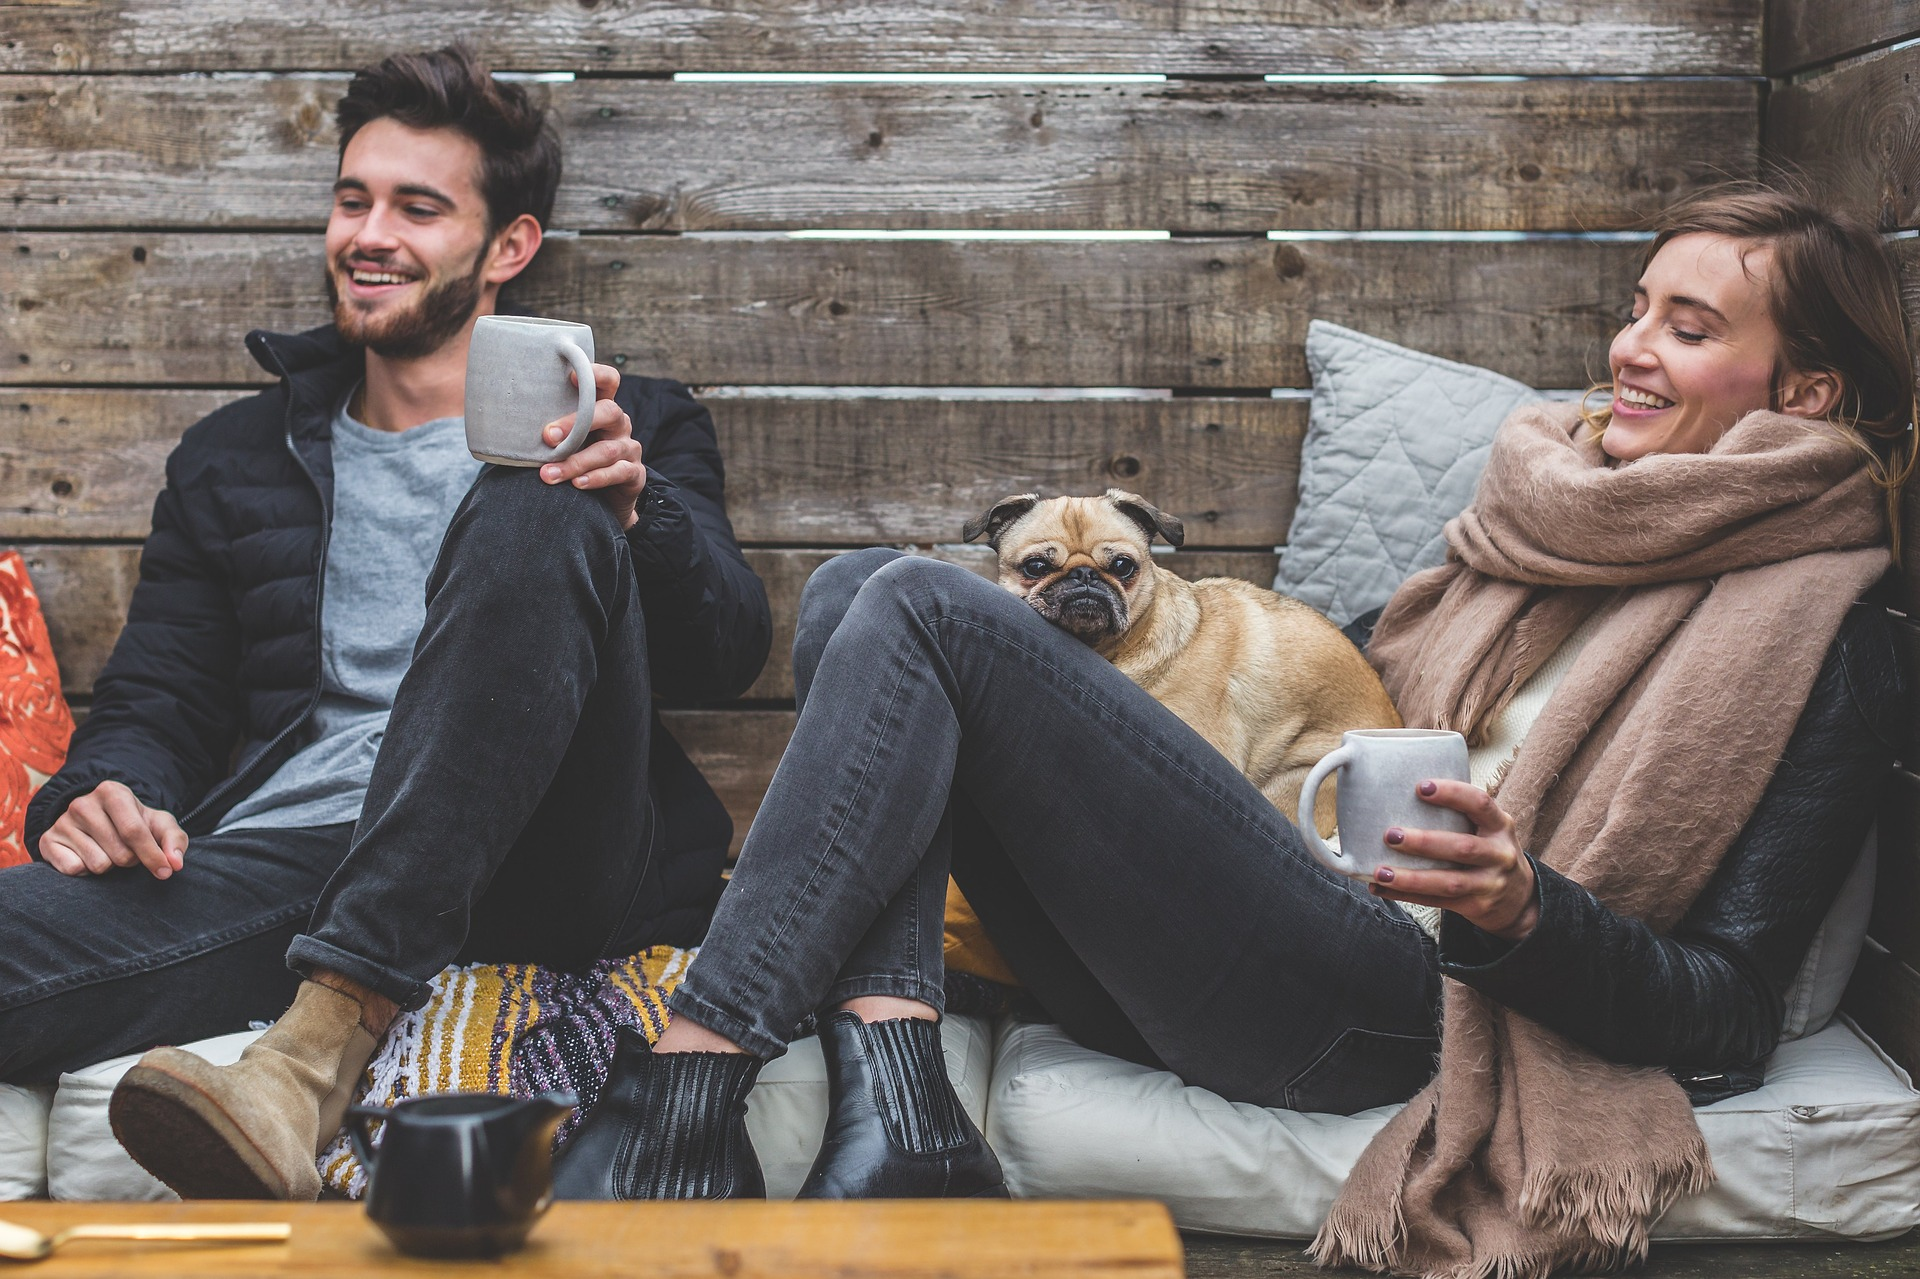 Simple Tips For Couples Sharing A Living Space For The First Time